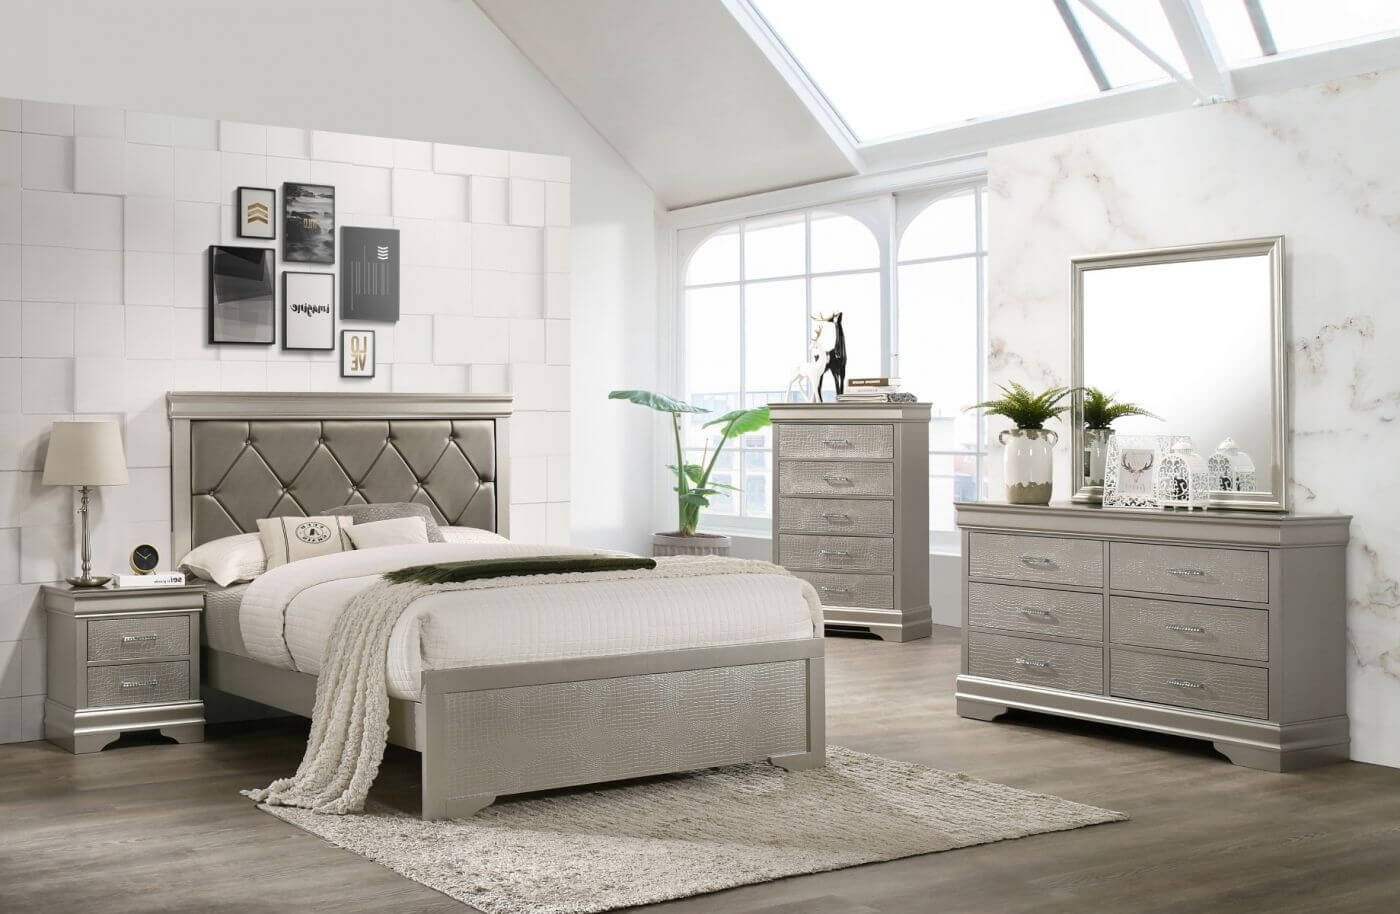 B4 Silver Amailia Bedroom Set by Crown Mark